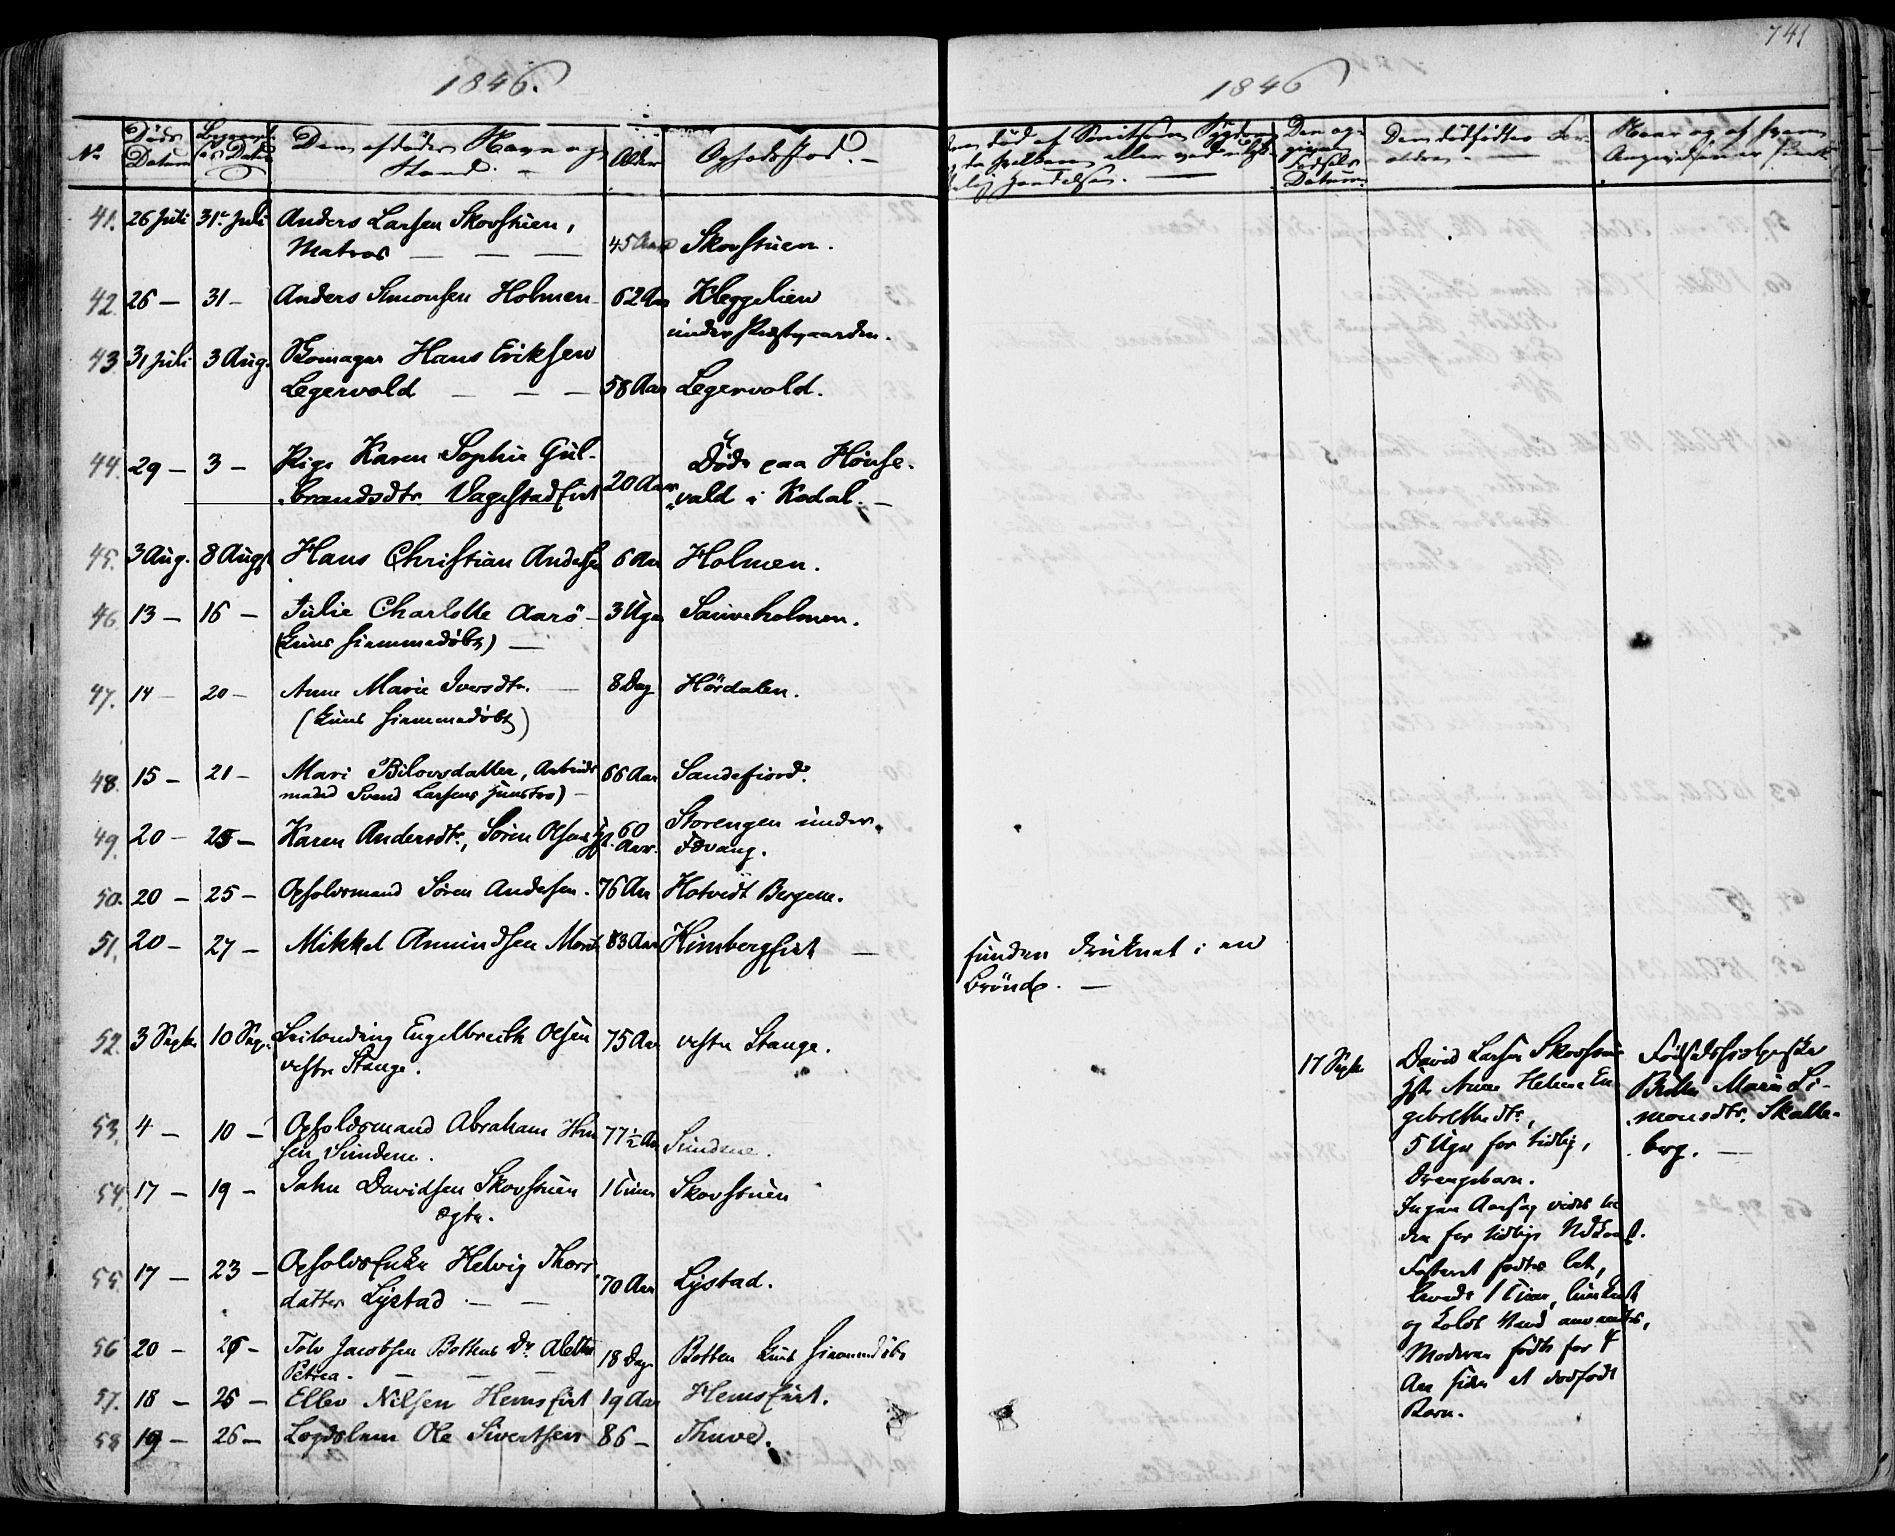 SAKO, Sandar kirkebøker, F/Fa/L0005: Parish register (official) no. 5, 1832-1847, p. 740-741